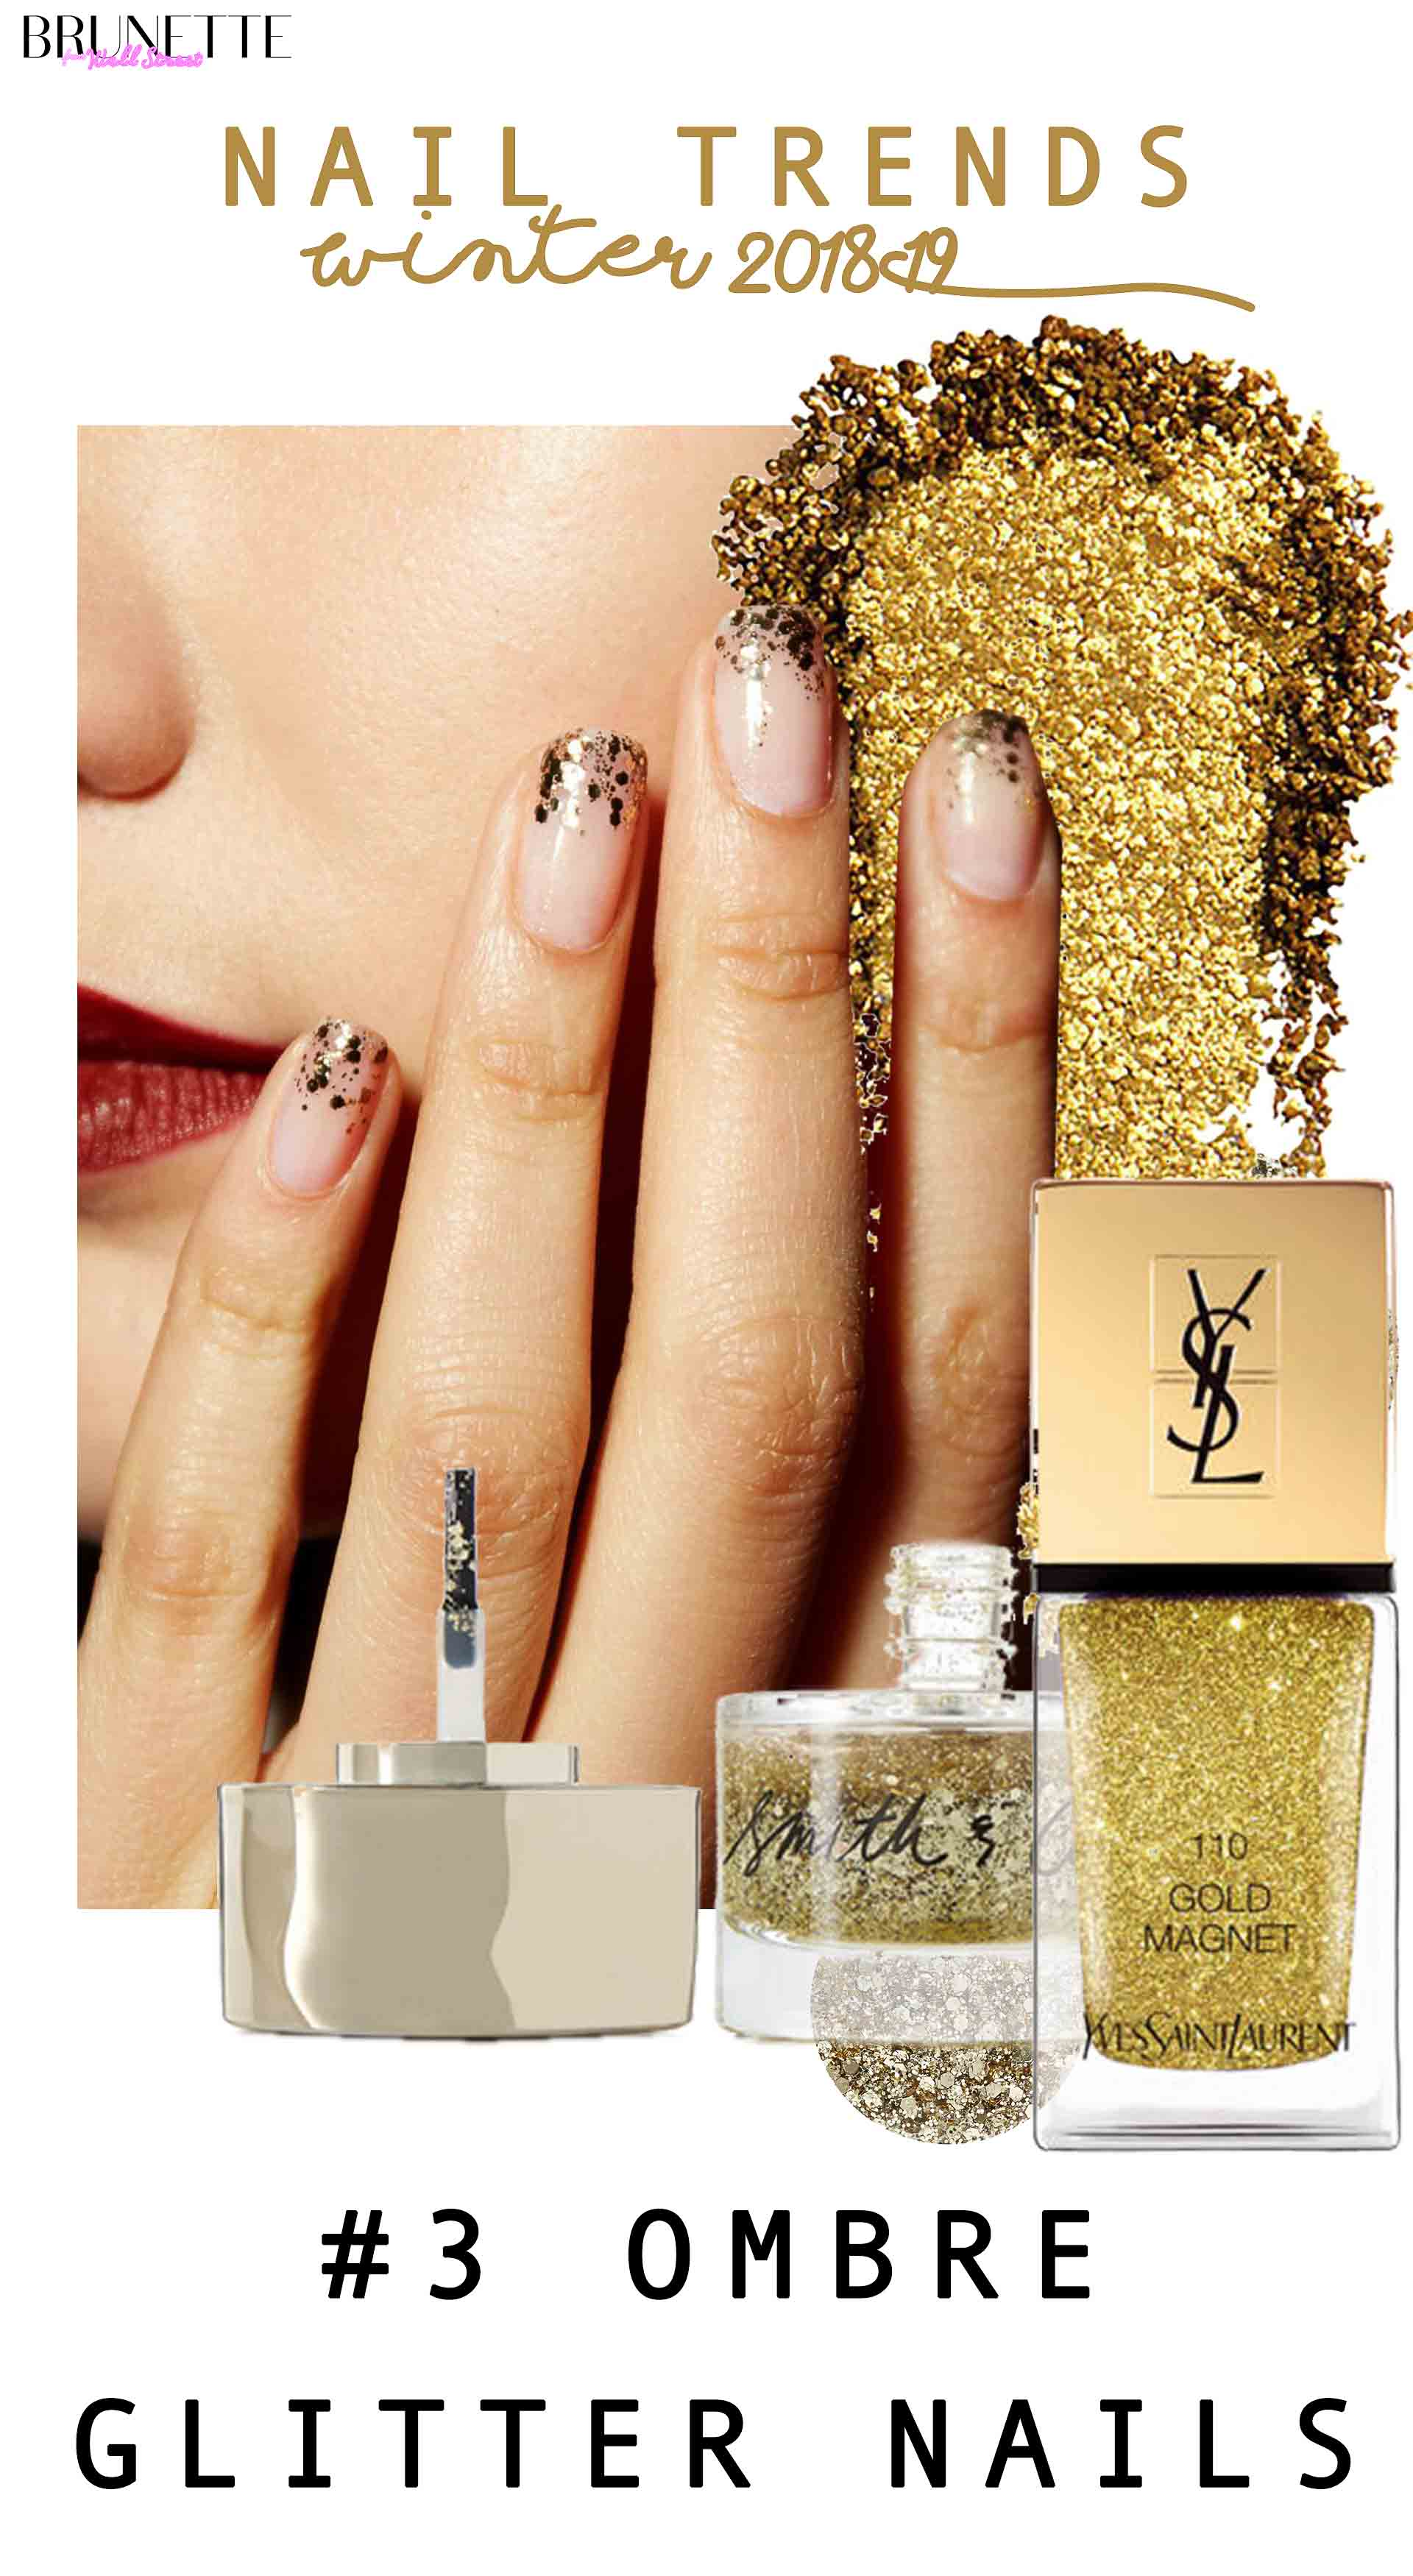 YSL gold nail polish, glitter, glitter tips with text overlay nail trends winter 2018 #3 ombre glitter nails